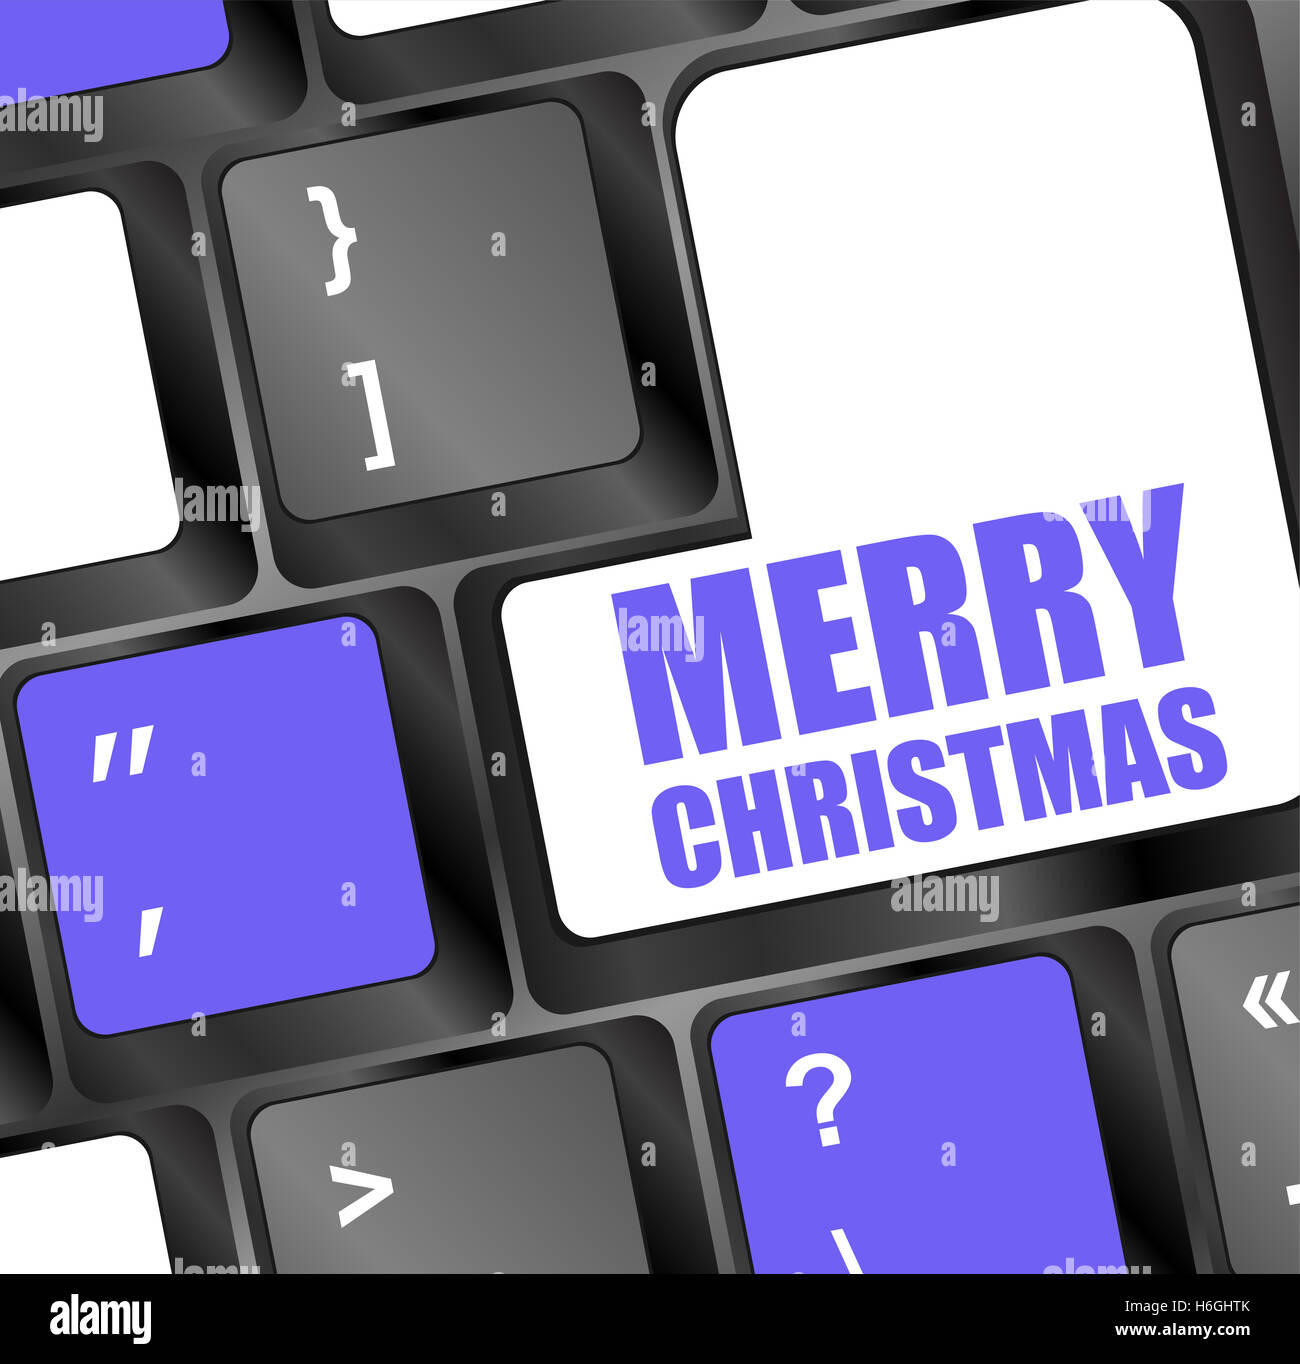 Computer Keyboard With Merry Christmas Key Stock Photo 124525763